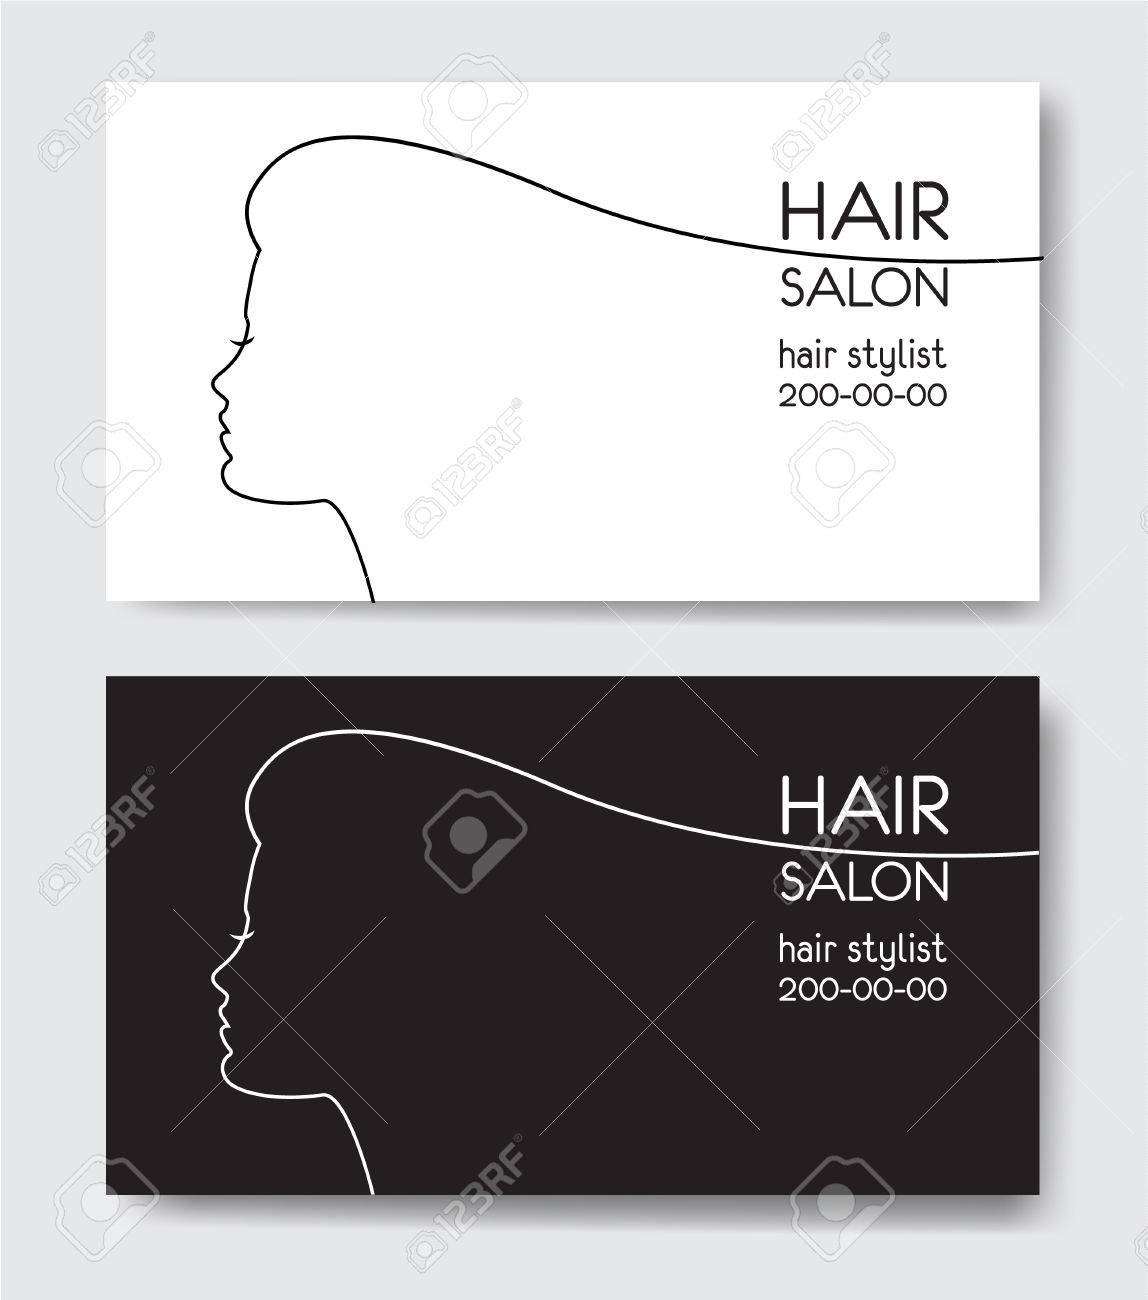 Hair Stylist Business Card Template from previews.123rf.com